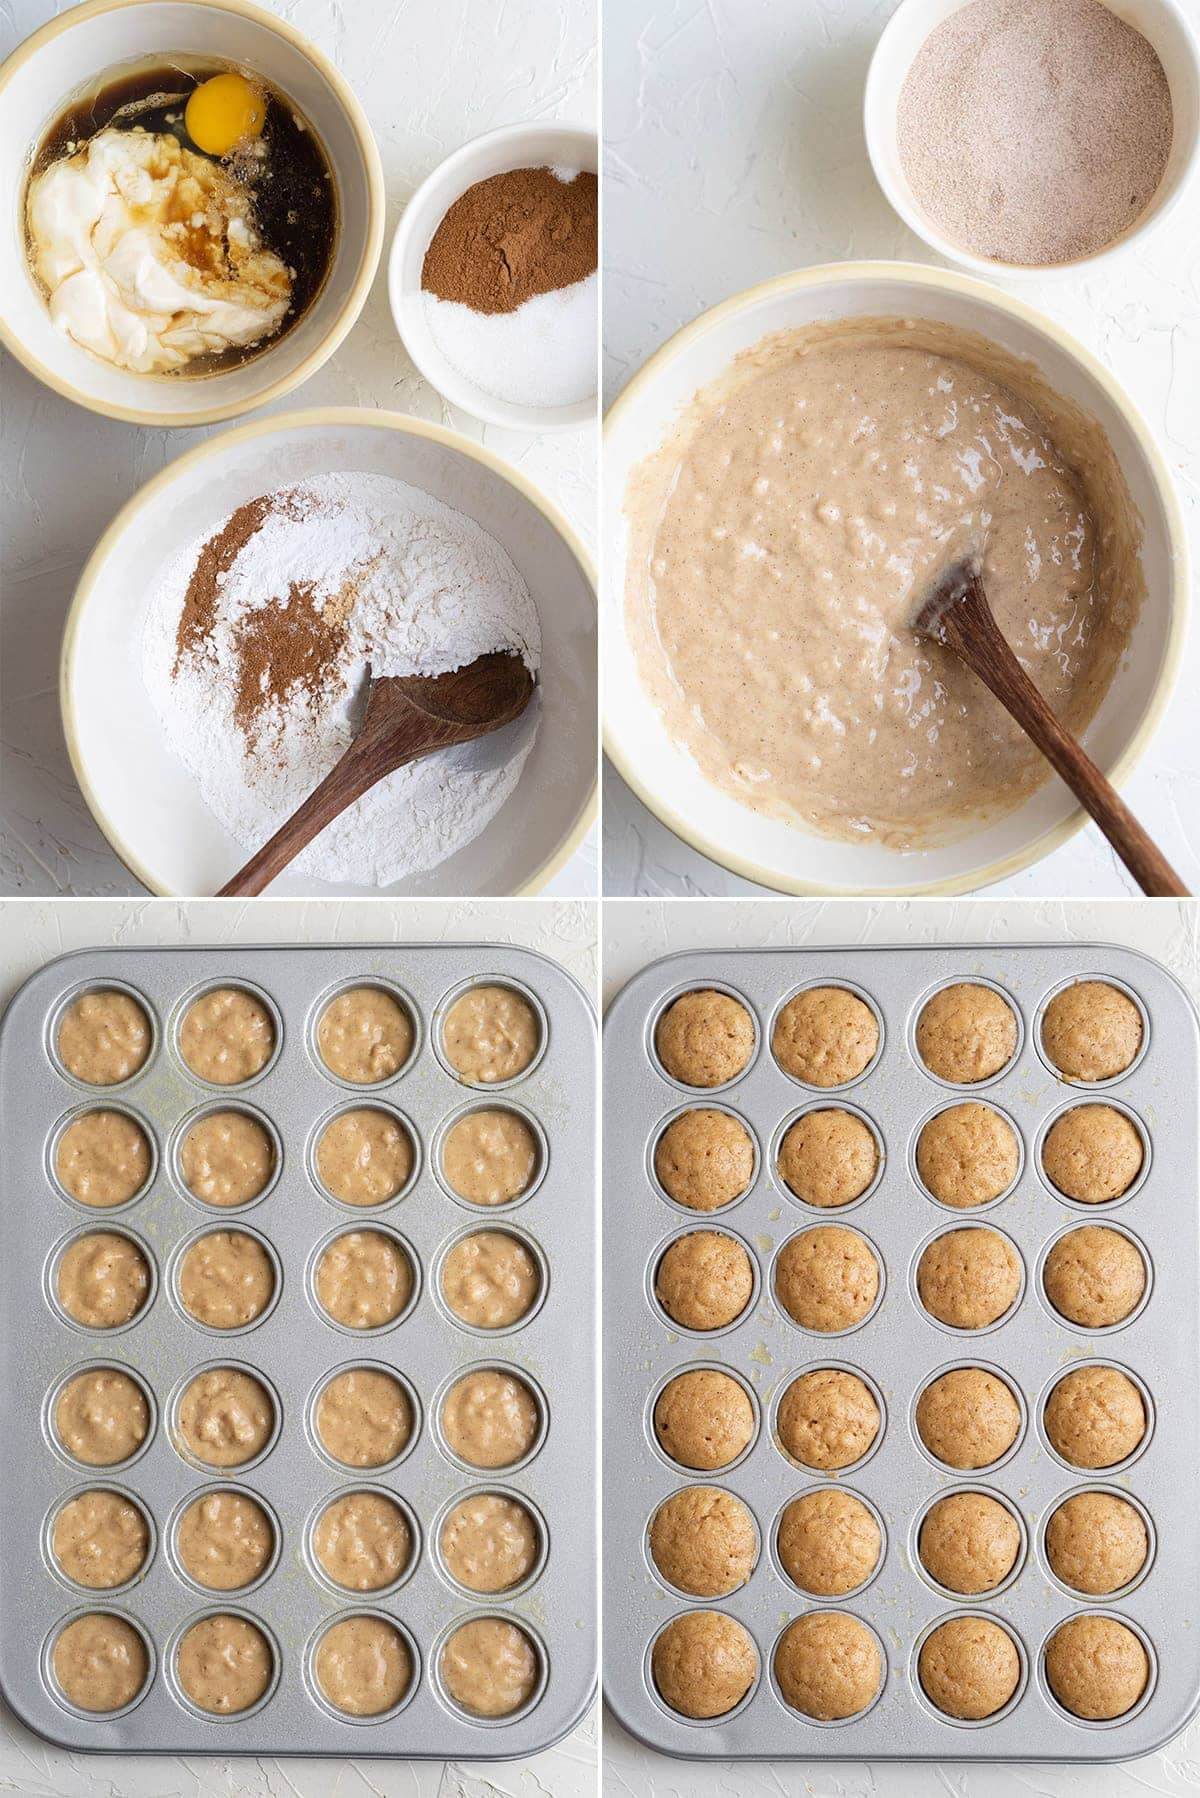 a collage of 4 images showing the steps for making apple cider donuts